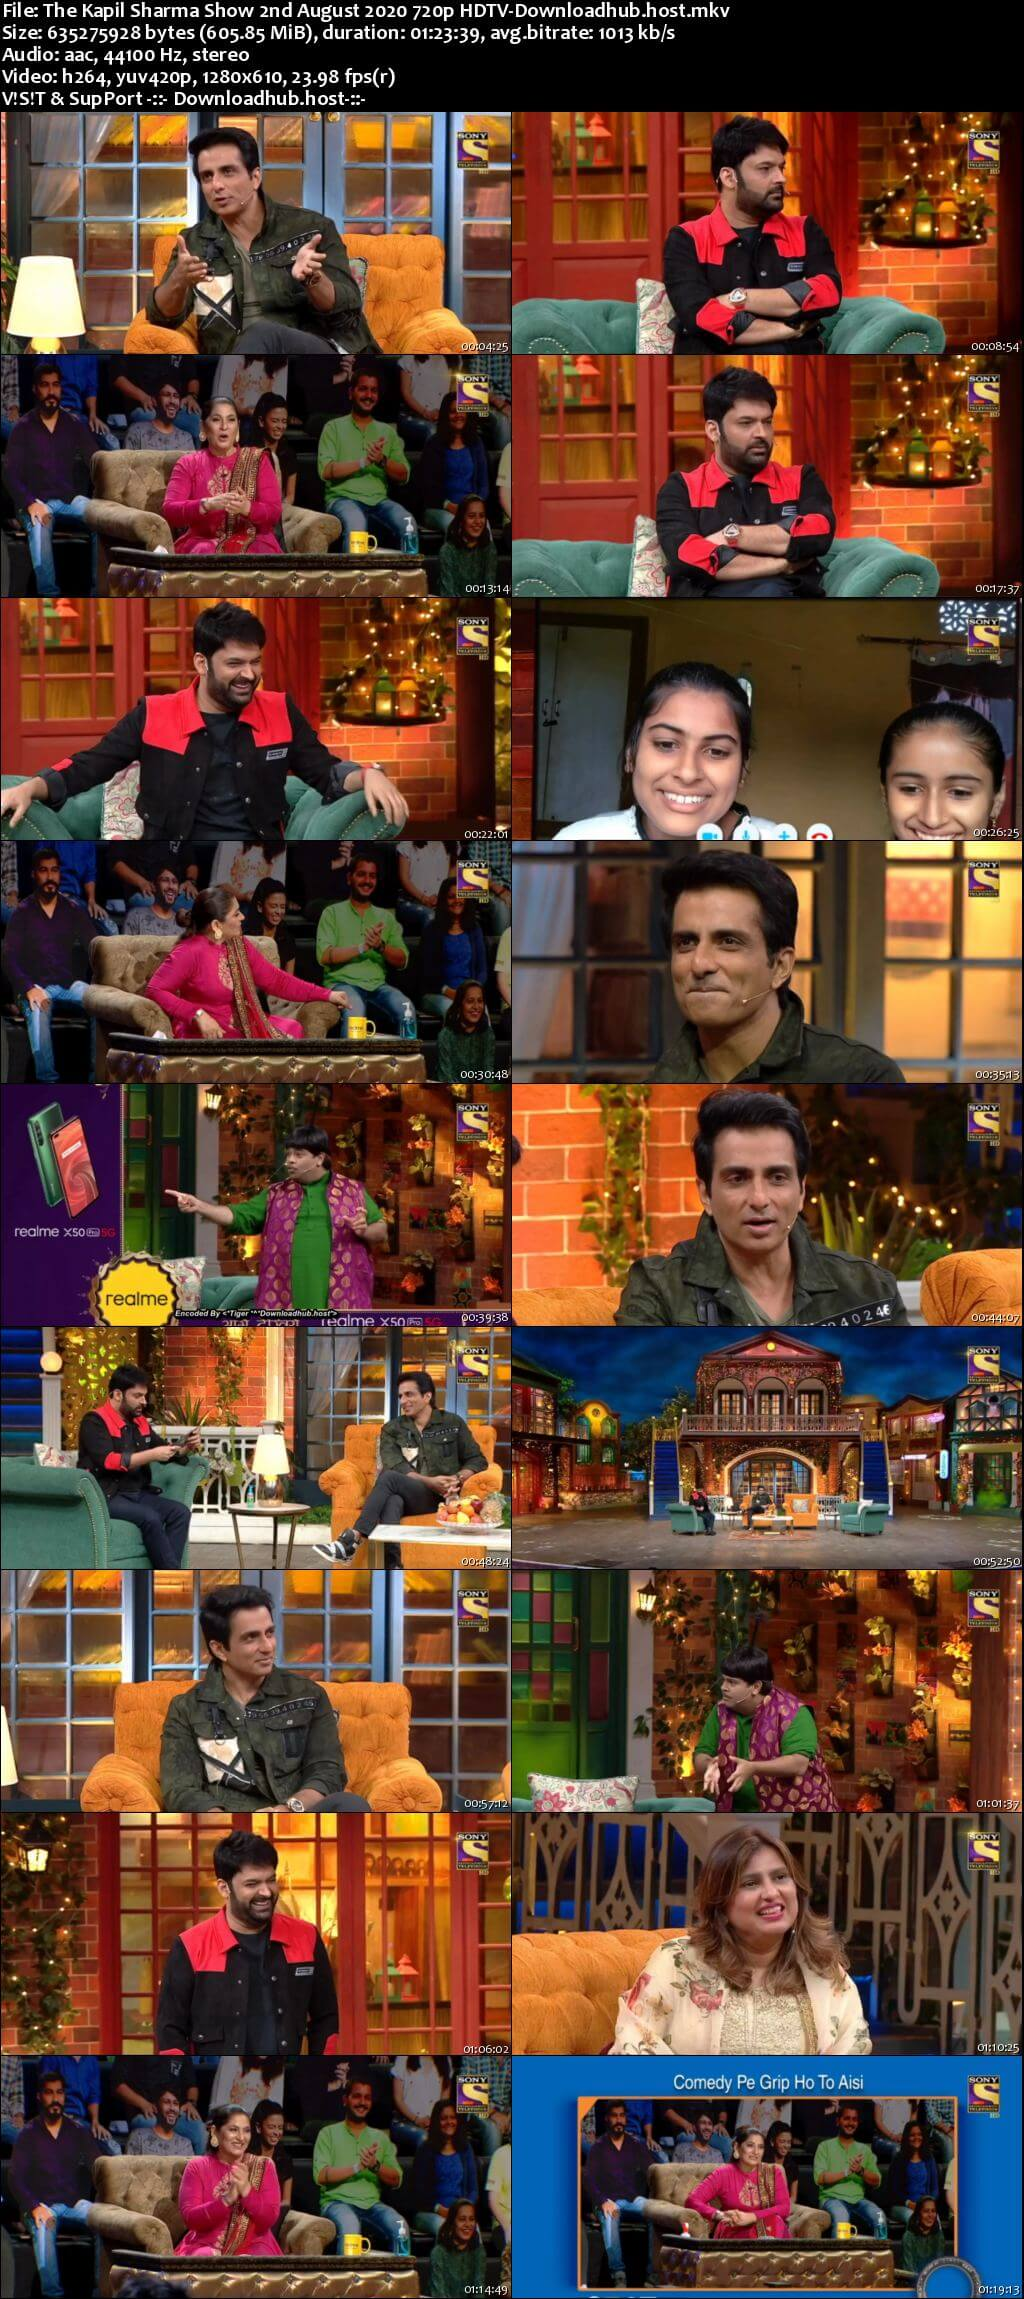 The Kapil Sharma Show 02 August 2020 Episode 129 HDTV 720p 480p